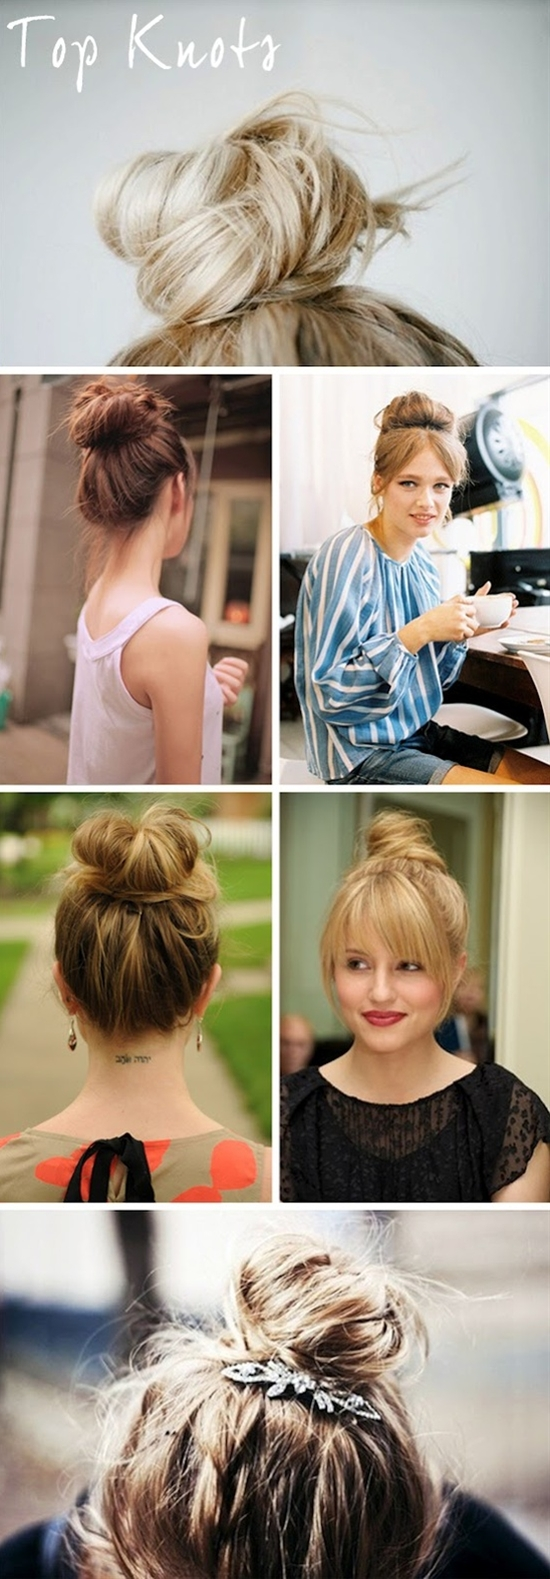 Summer hairstyle... All I gotta do is learn how to do it!